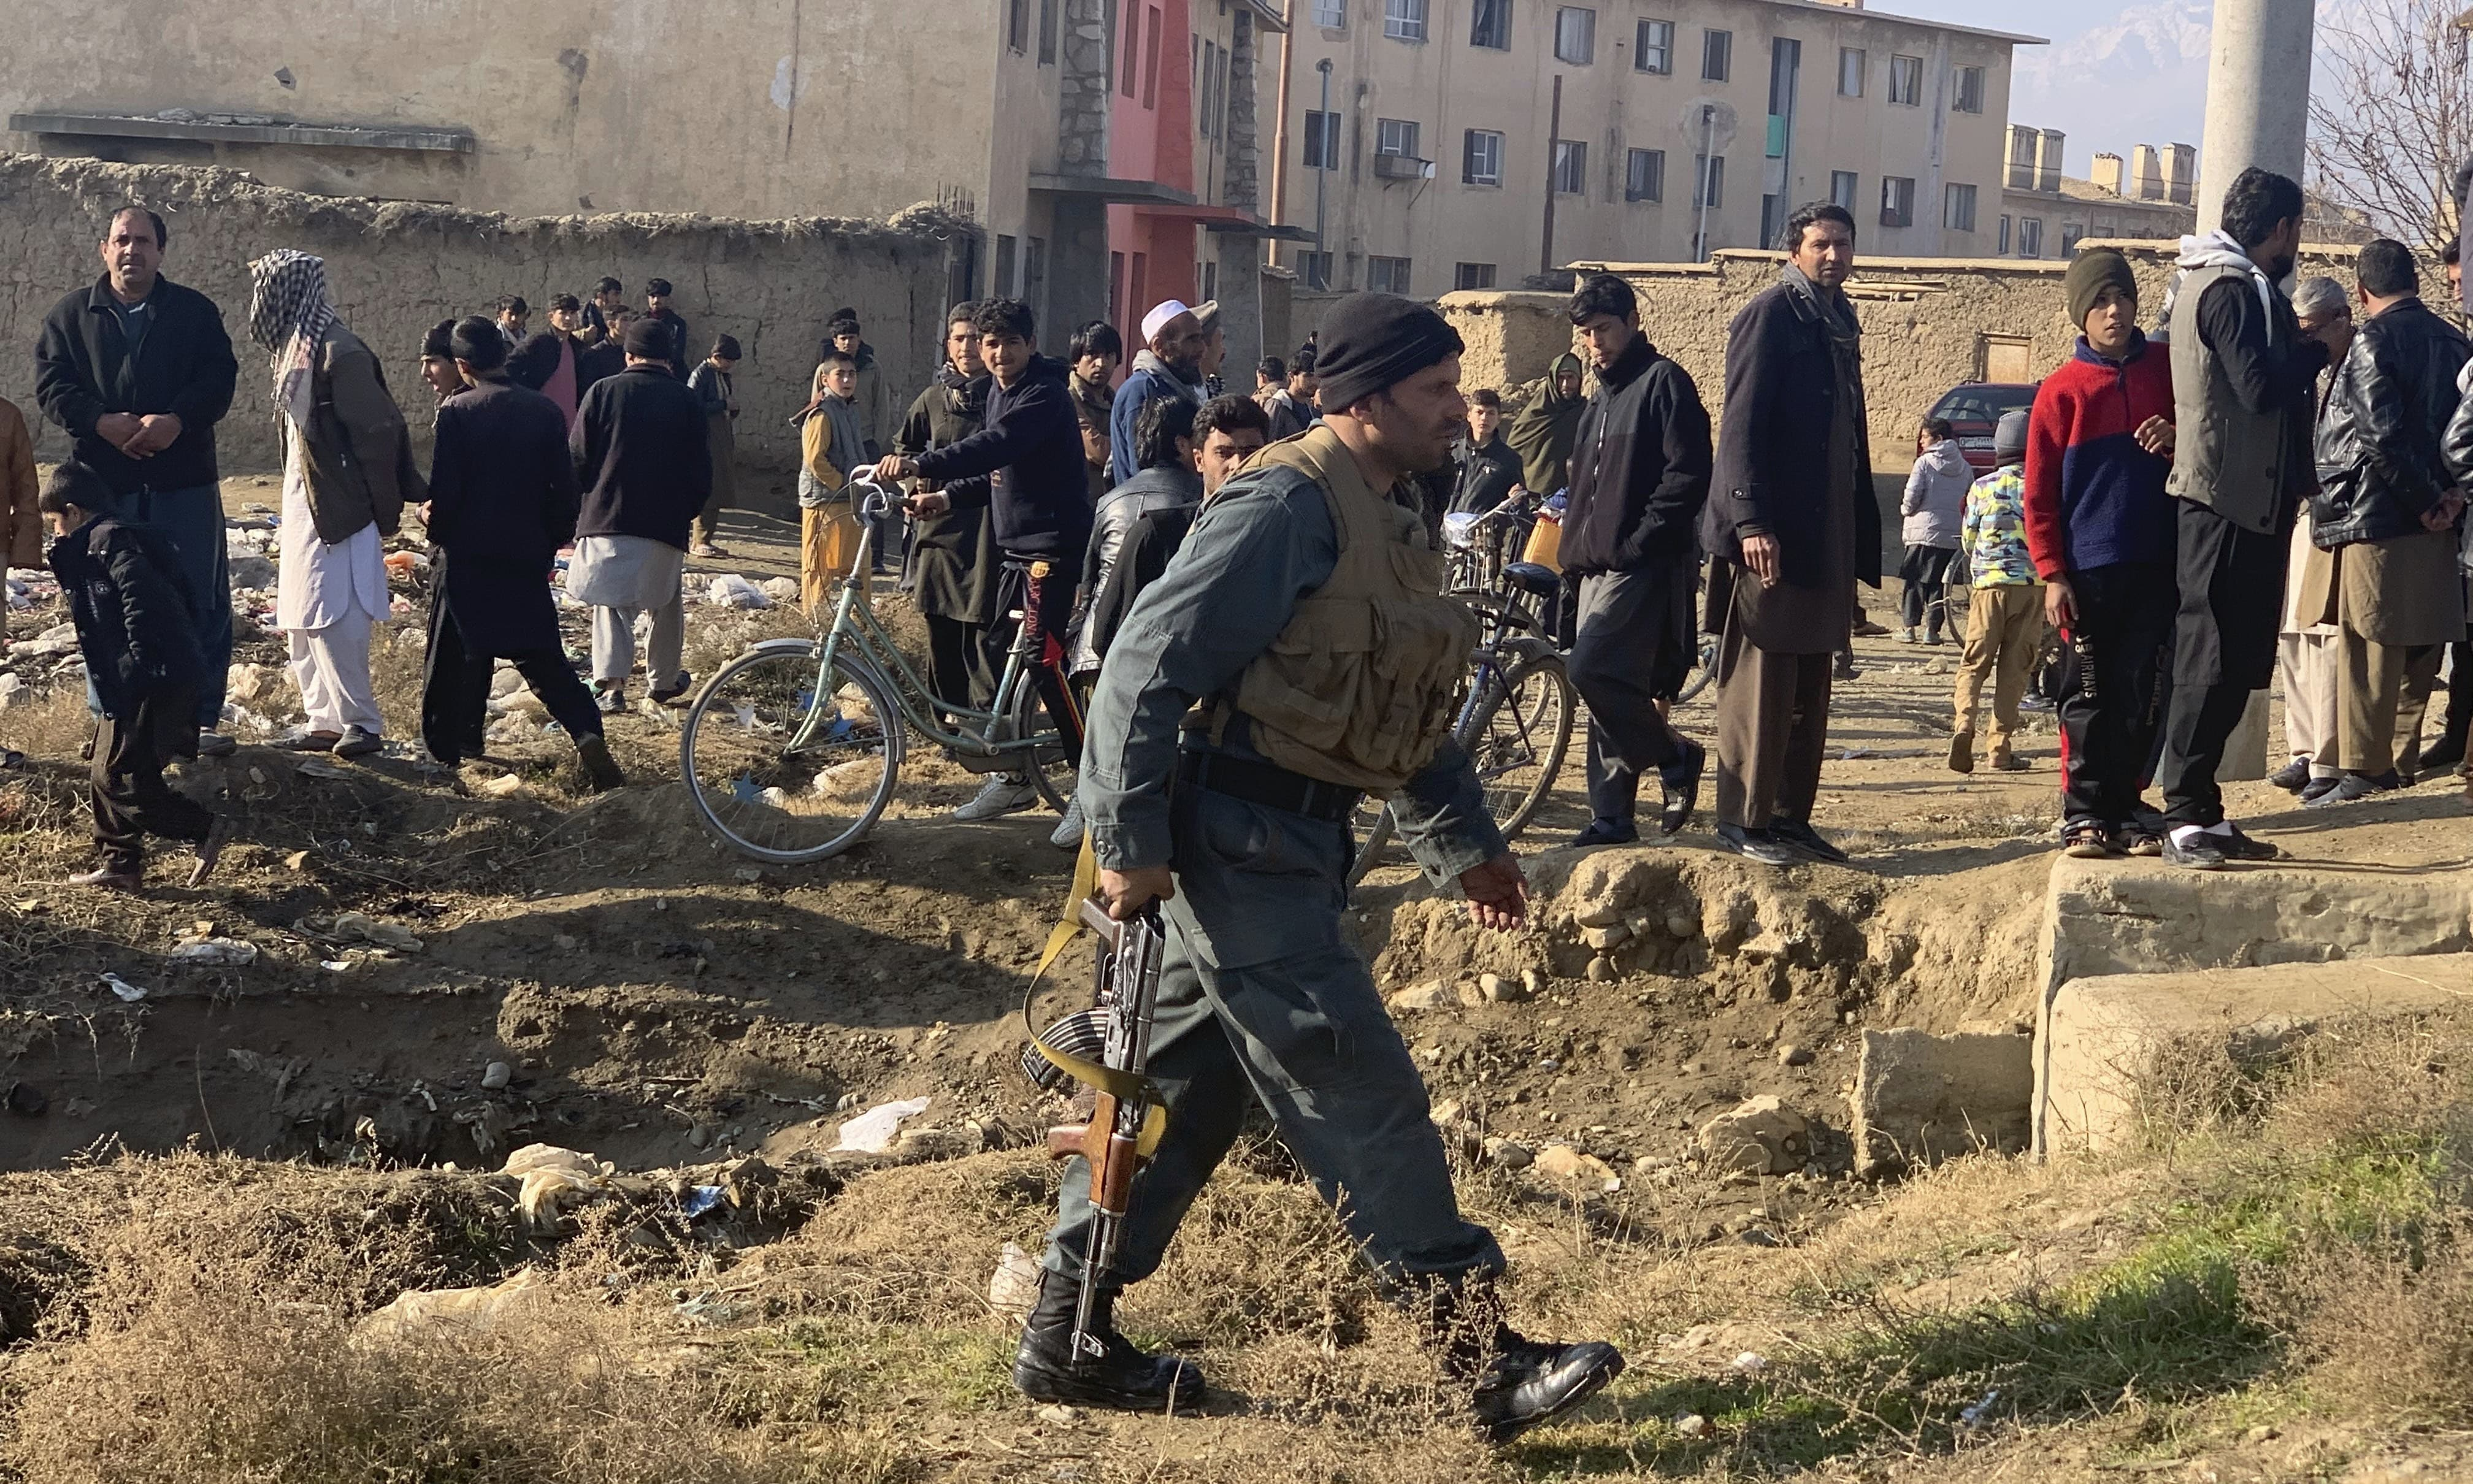 Blast at U.S. military base in Afghanistan kills one, injures 60